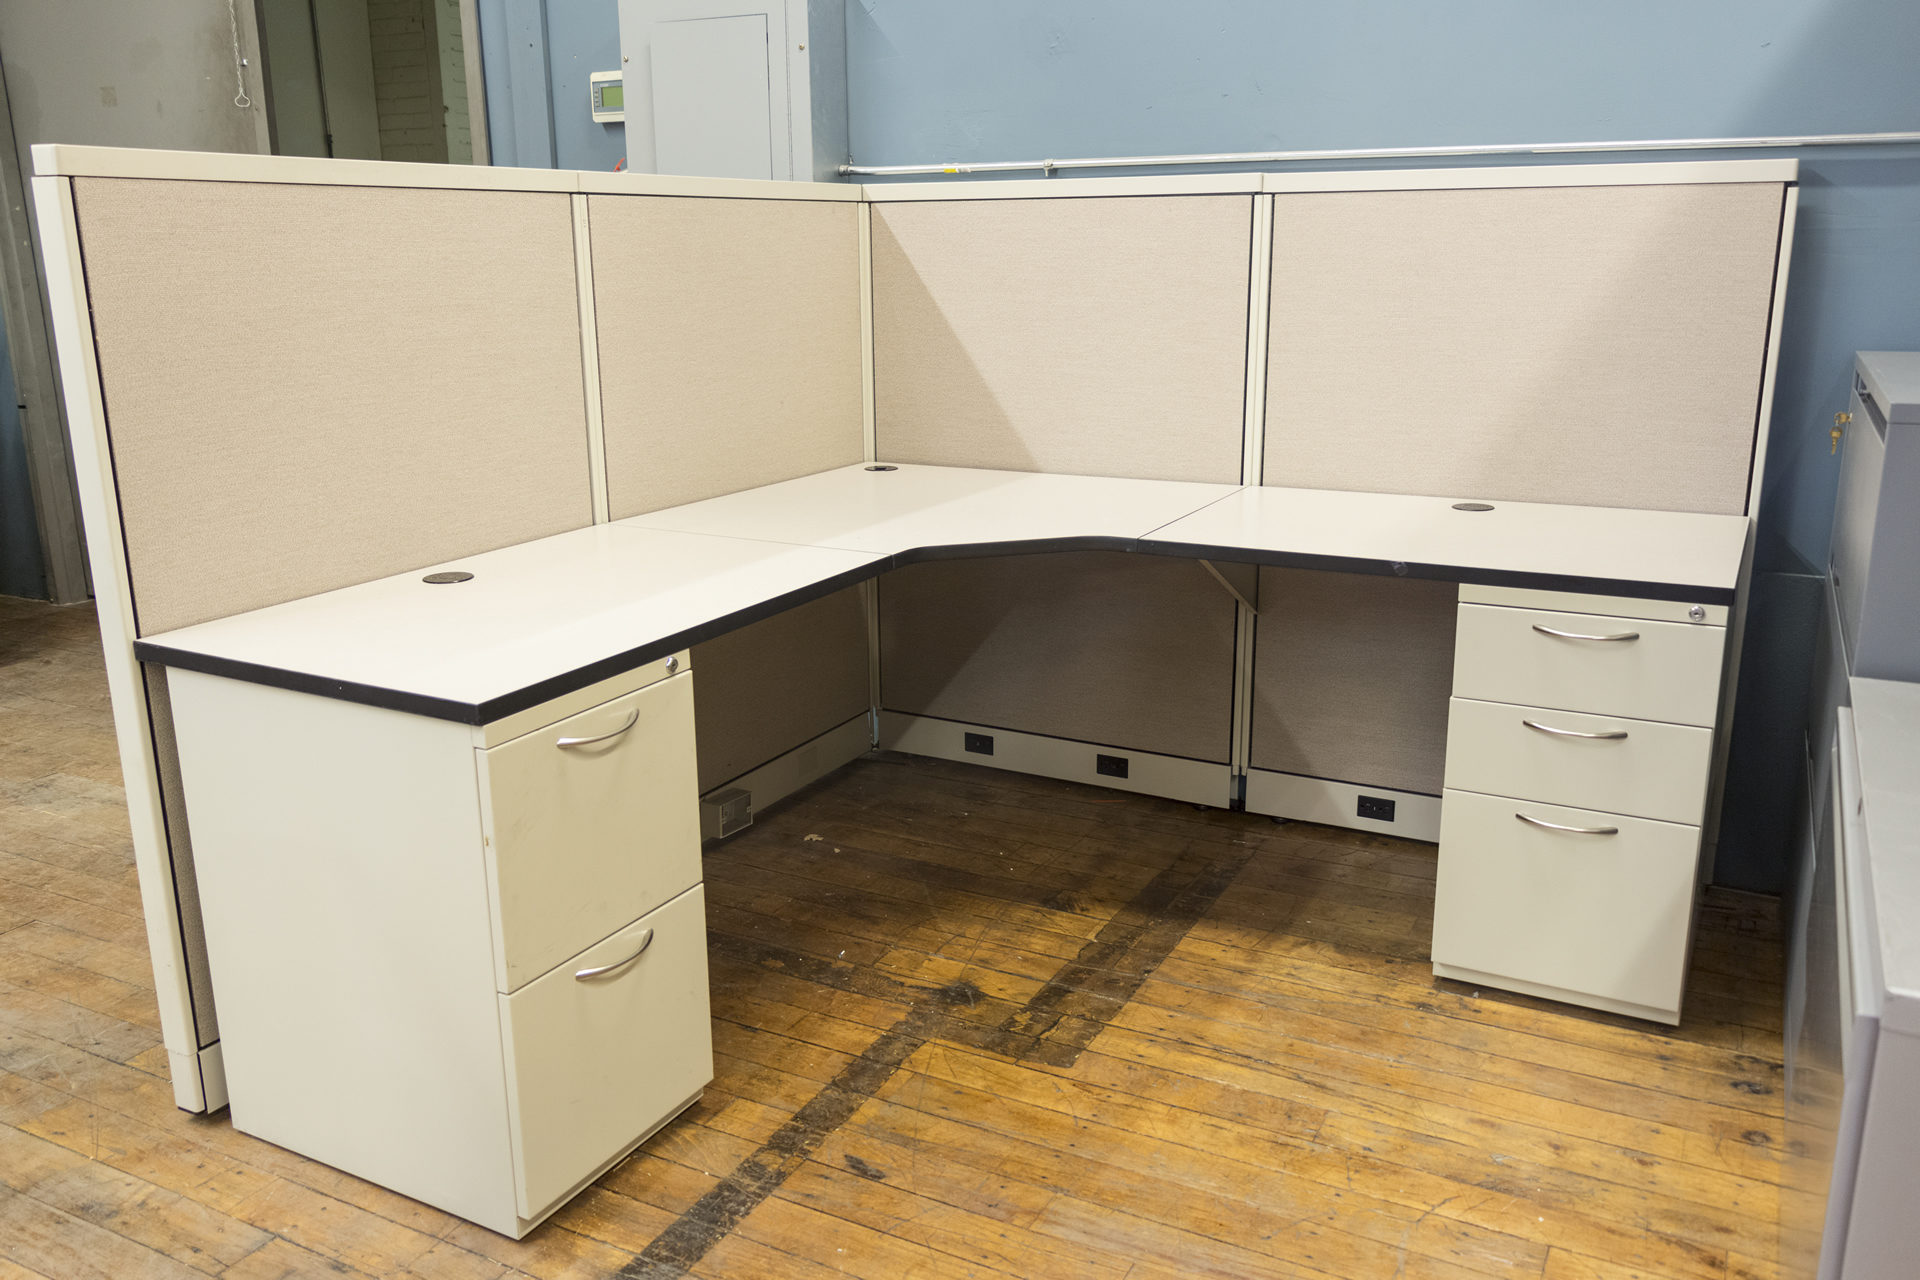 peartreeofficefurniture_peartreeofficefurniture_peartreeofficefurniture_img_9561.jpg